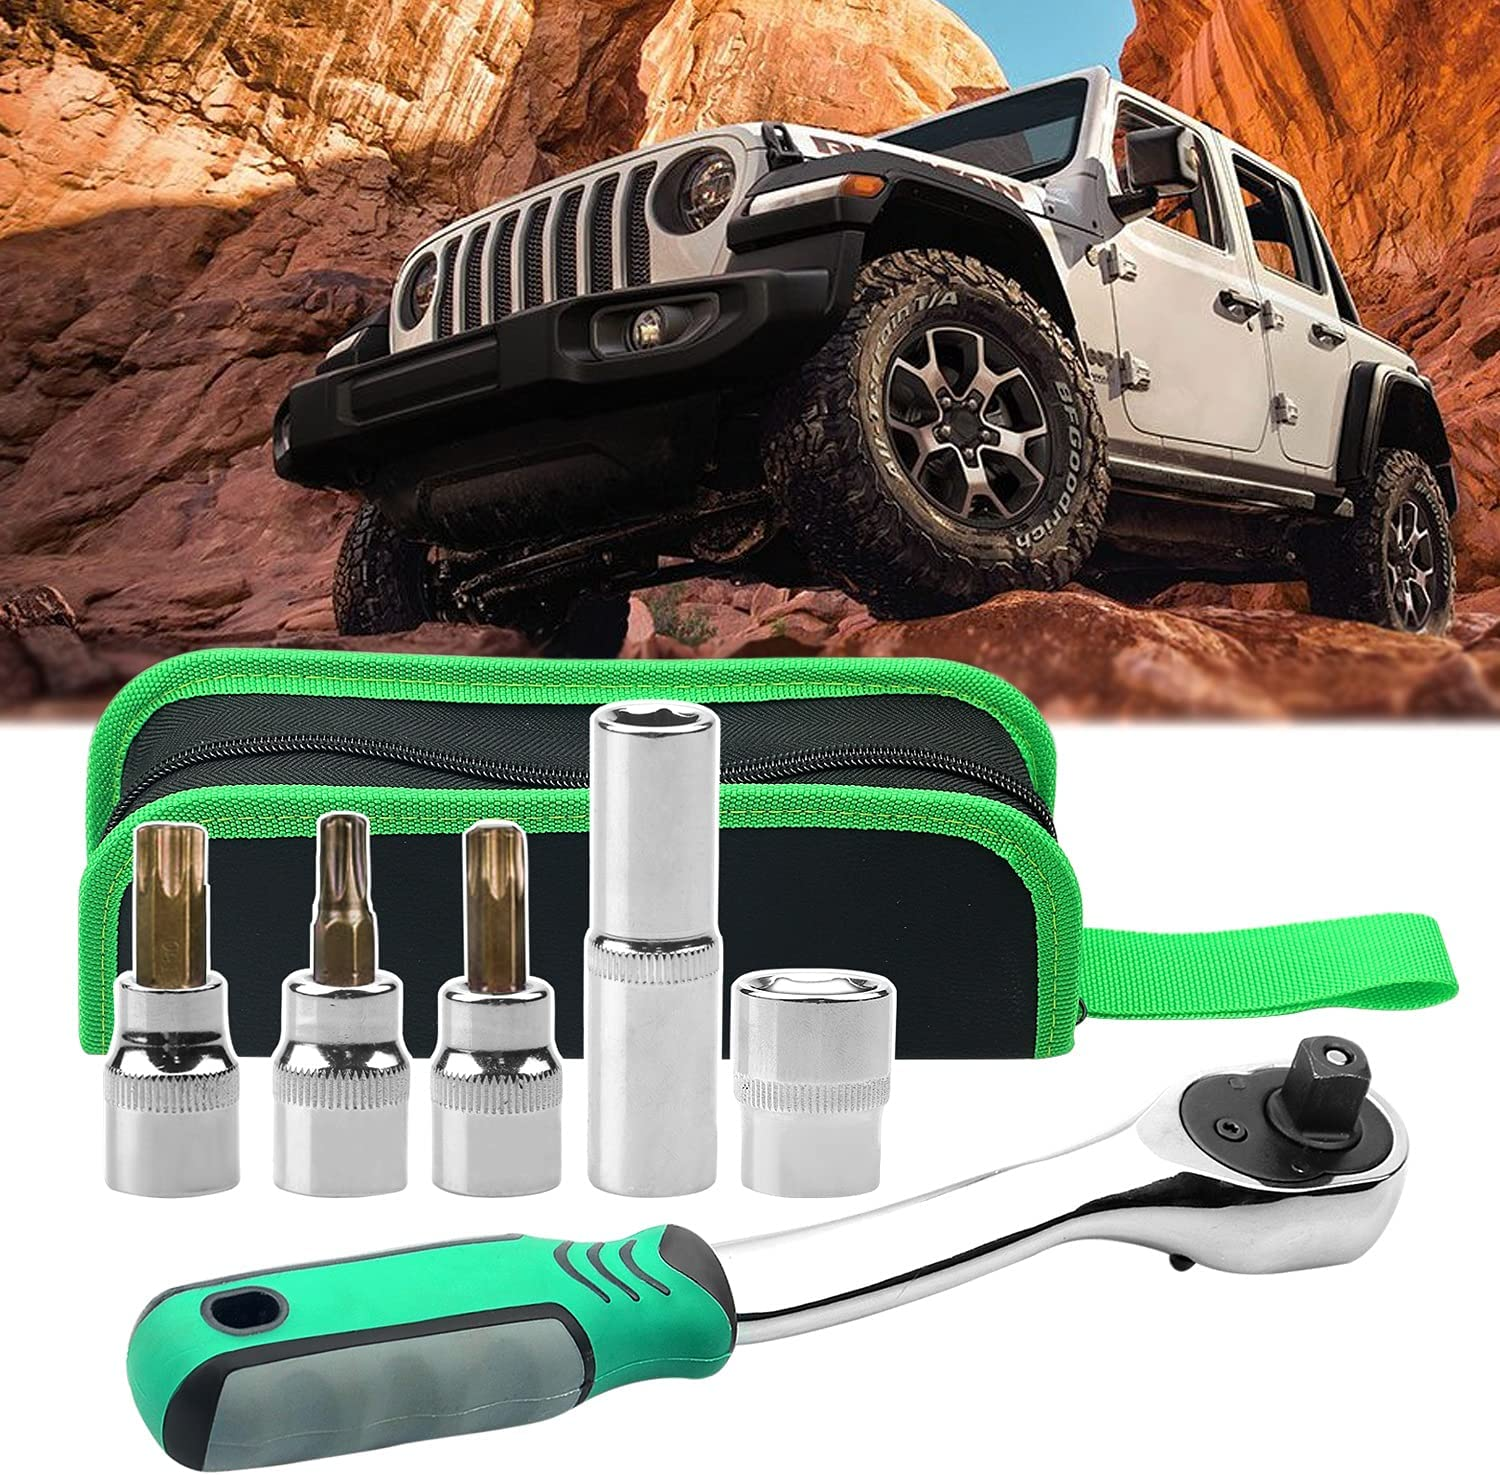 For Jeep Wrangler Accessories Torx Spring new work one after another Bargain sale Tool Door Top Soft R Hard Kit